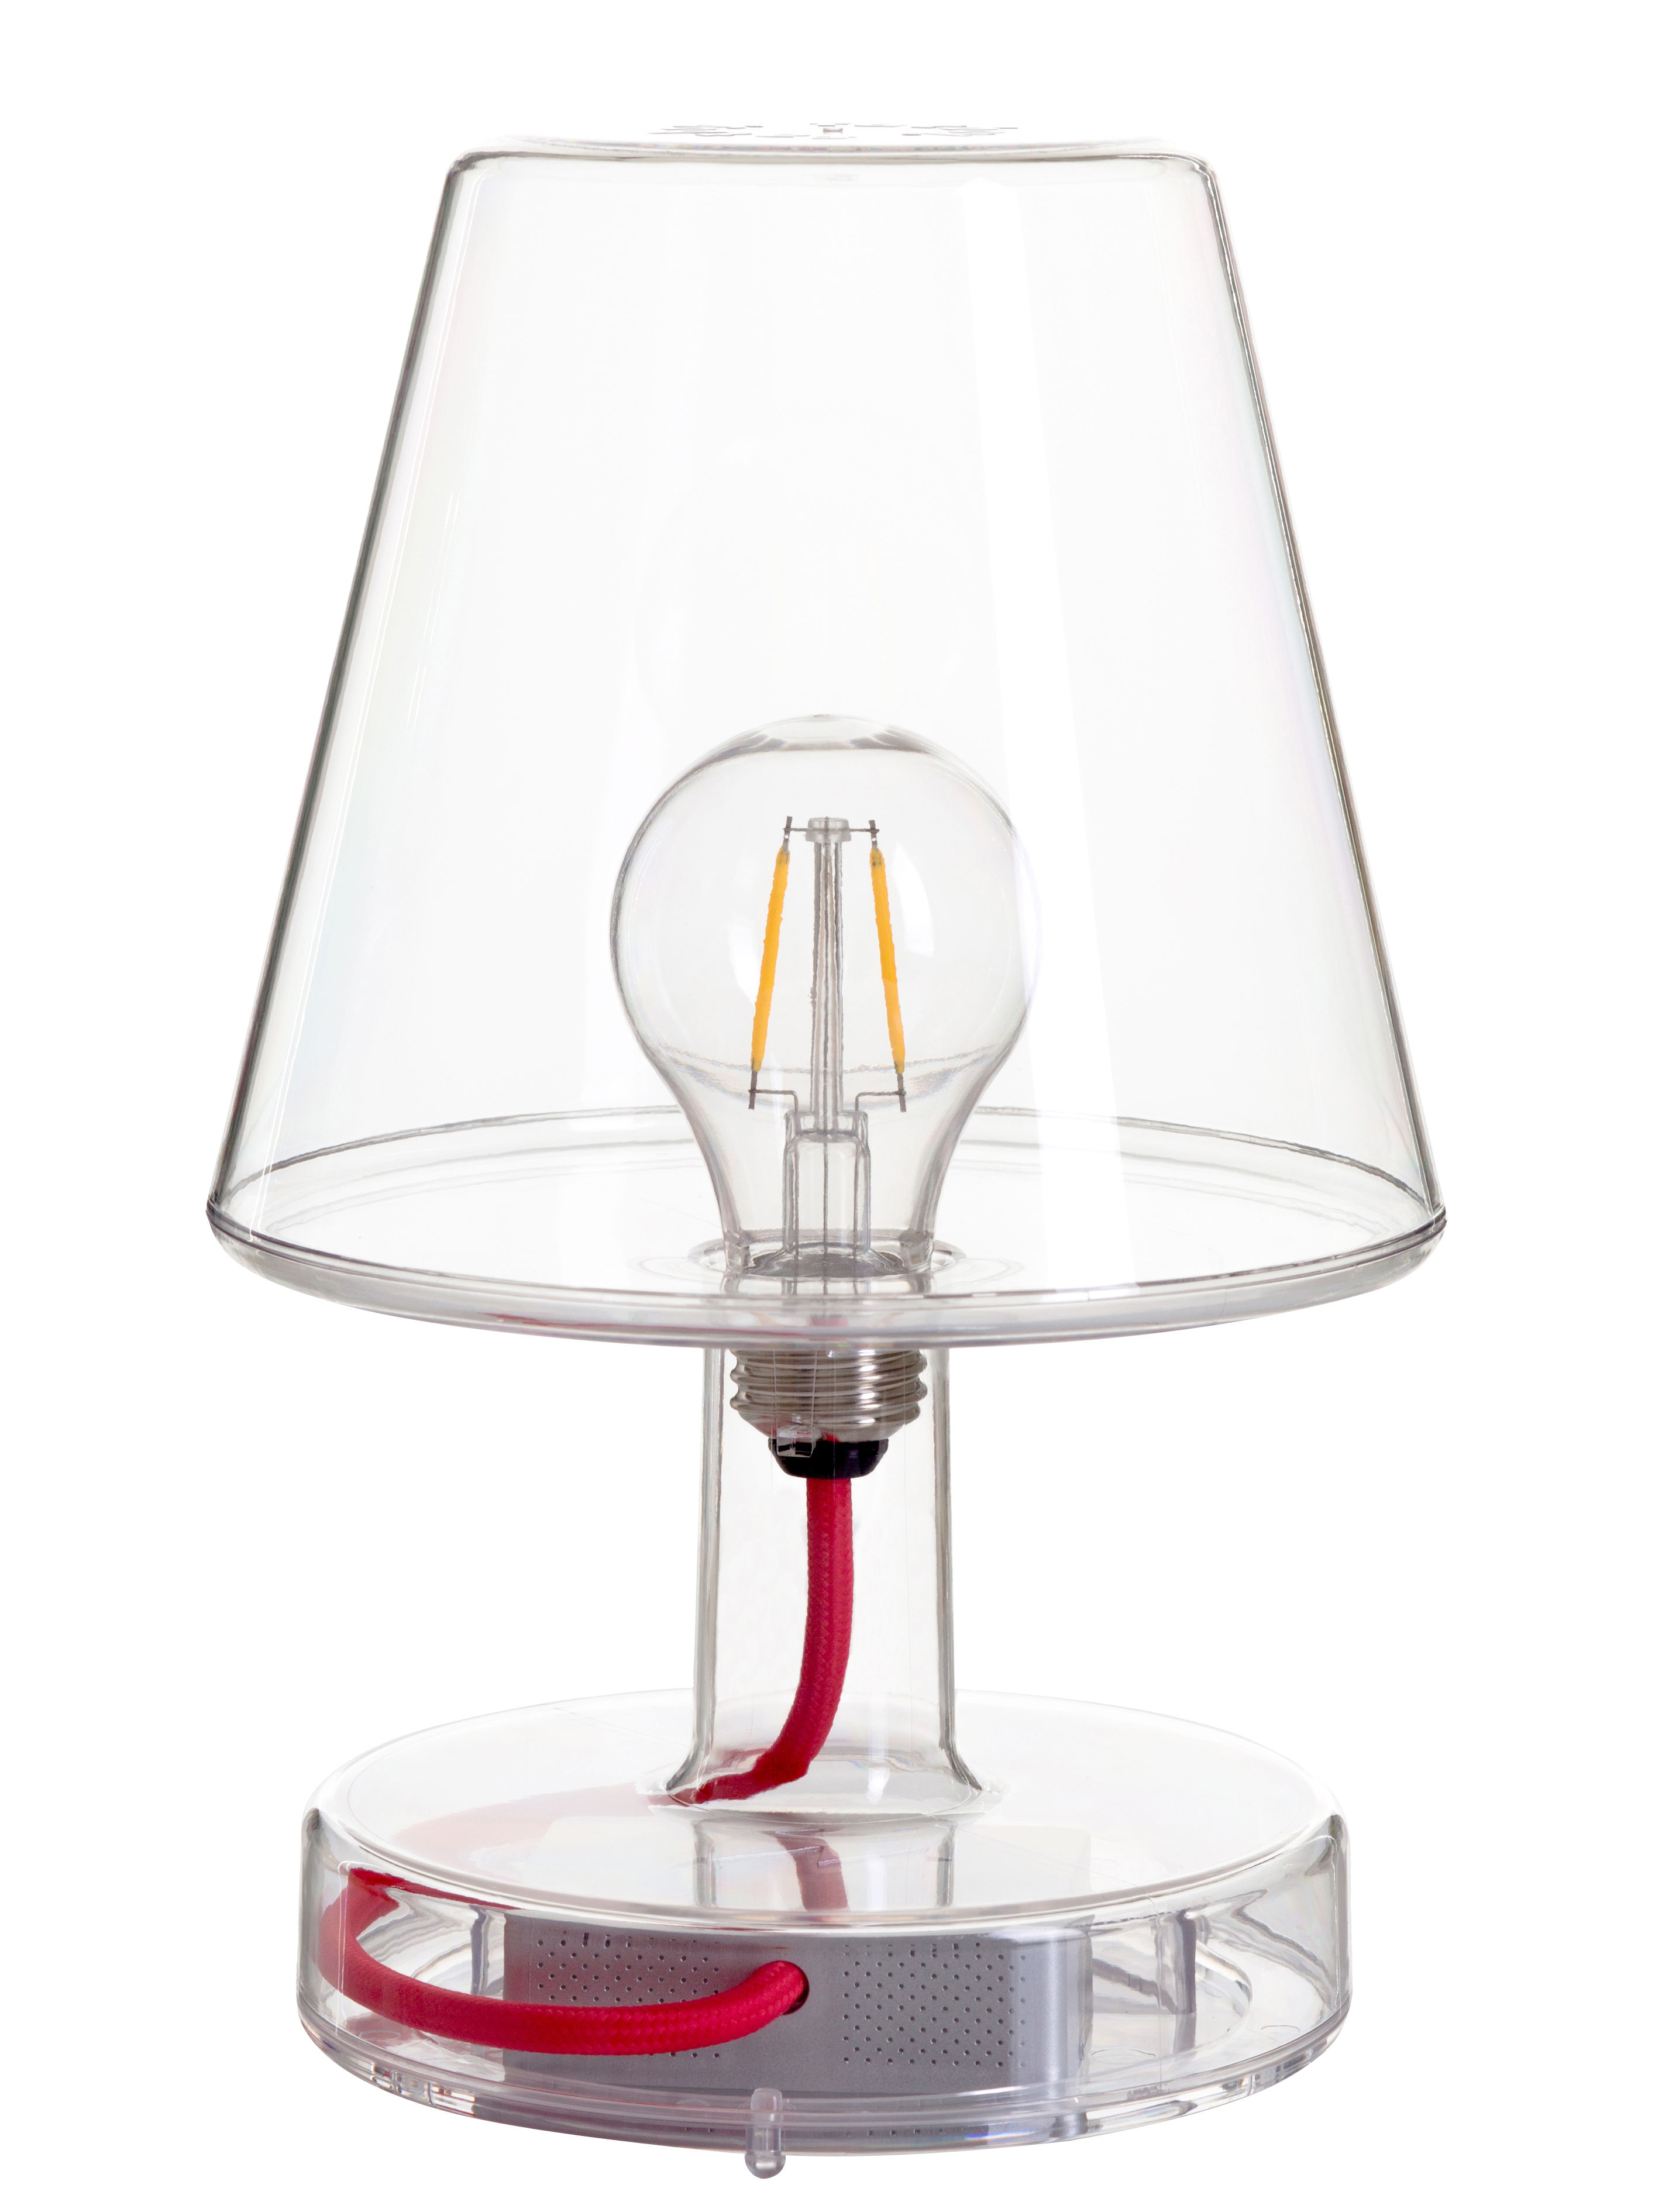 Lighting - Table Lamps - Transloetje Wireless lamp - / LED - Ø 16 x H 25 cm by Fatboy - Transparent - Polycarbonate